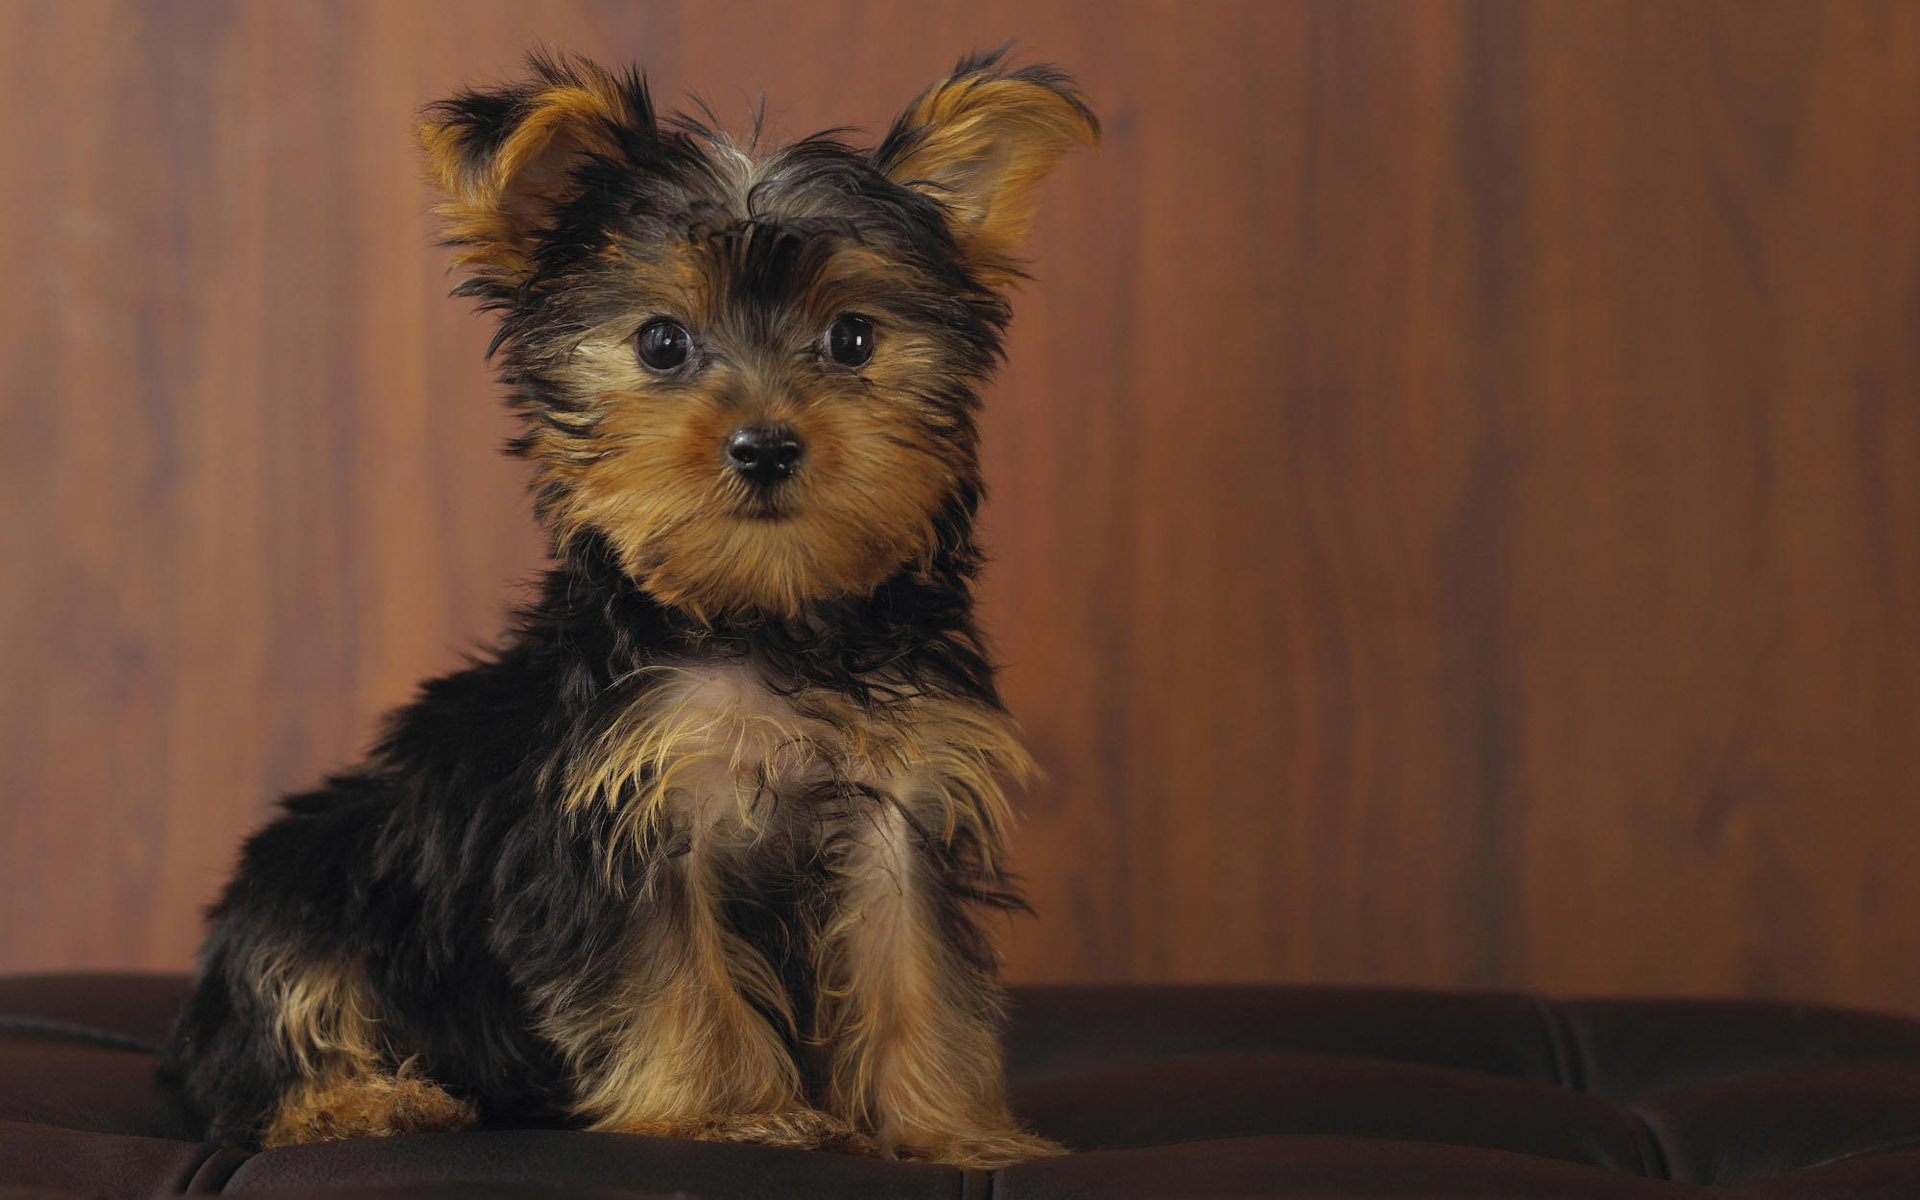 Awesome Yorkshire Terrier free wallpaper ID:110962 for hd 1920x1200 desktop